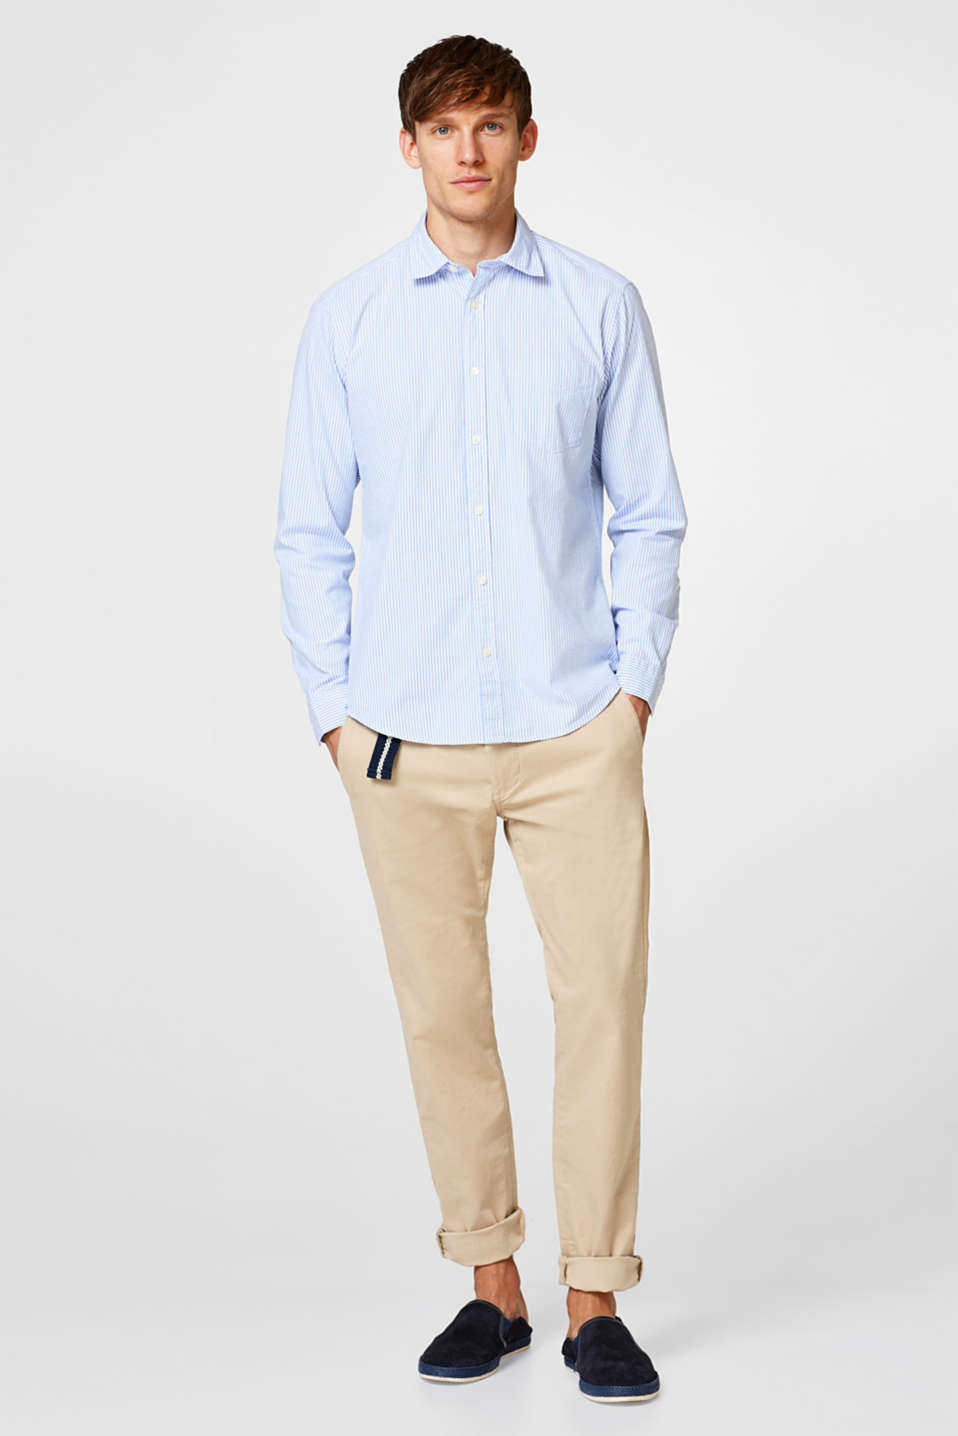 Esprit - Lightweight Oxford shirt in cotton